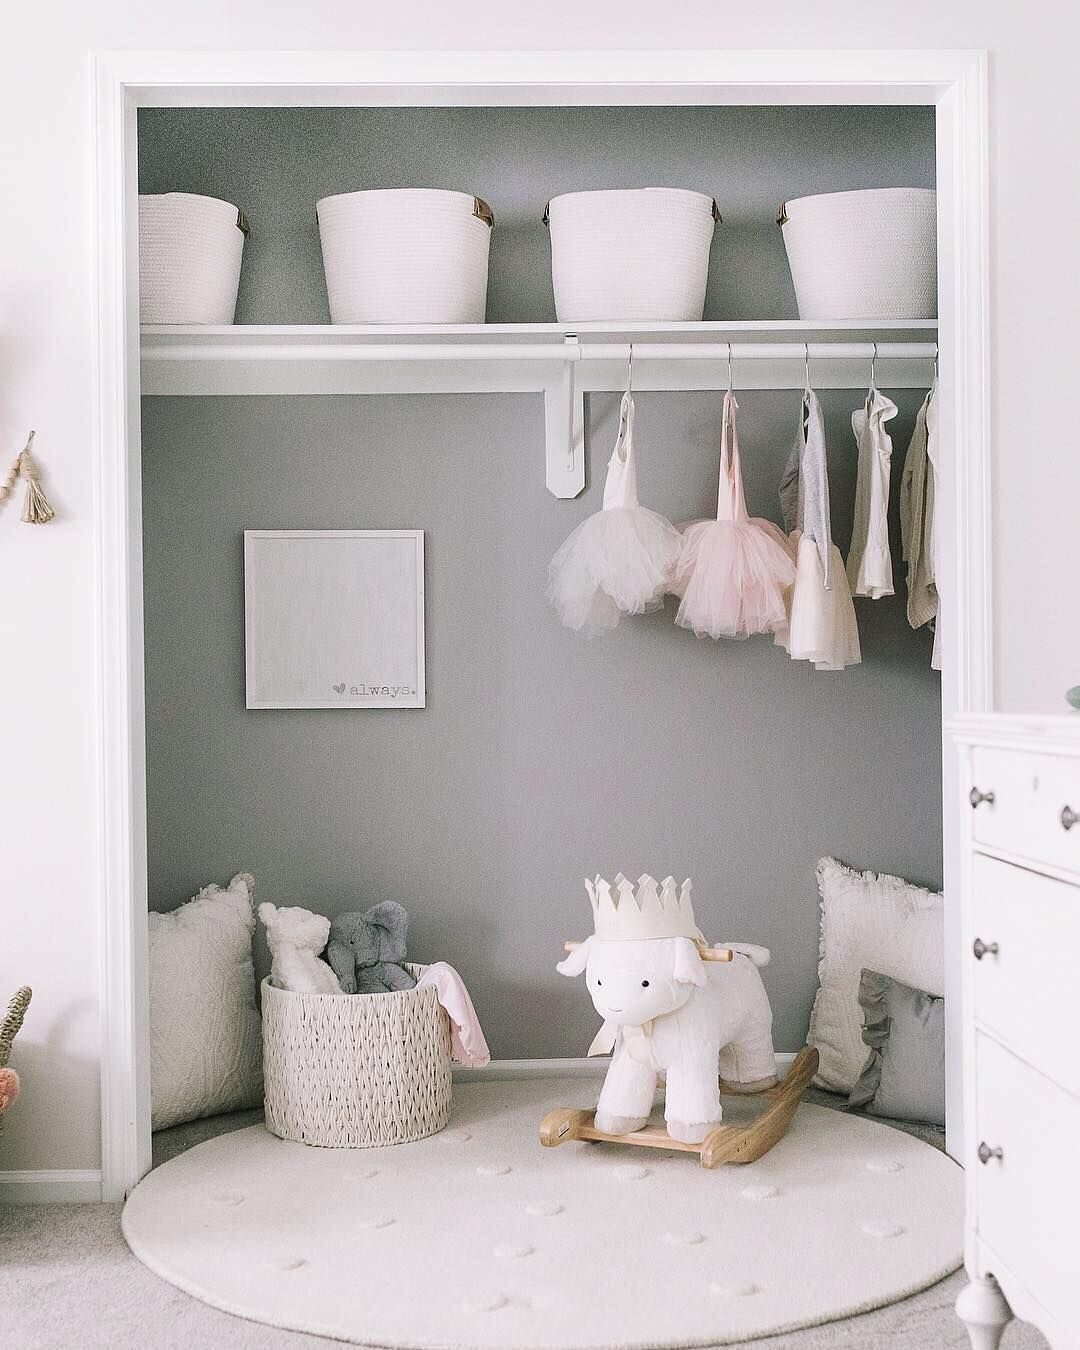 "iloveplum on Instagram ""If only our closet looked this neat and organized 👍🏻💪🏻🥰 @katiebethlamb everythinginitsplace closetgoals organizedcloset iloveplum"" is part of Toddler girl room -"